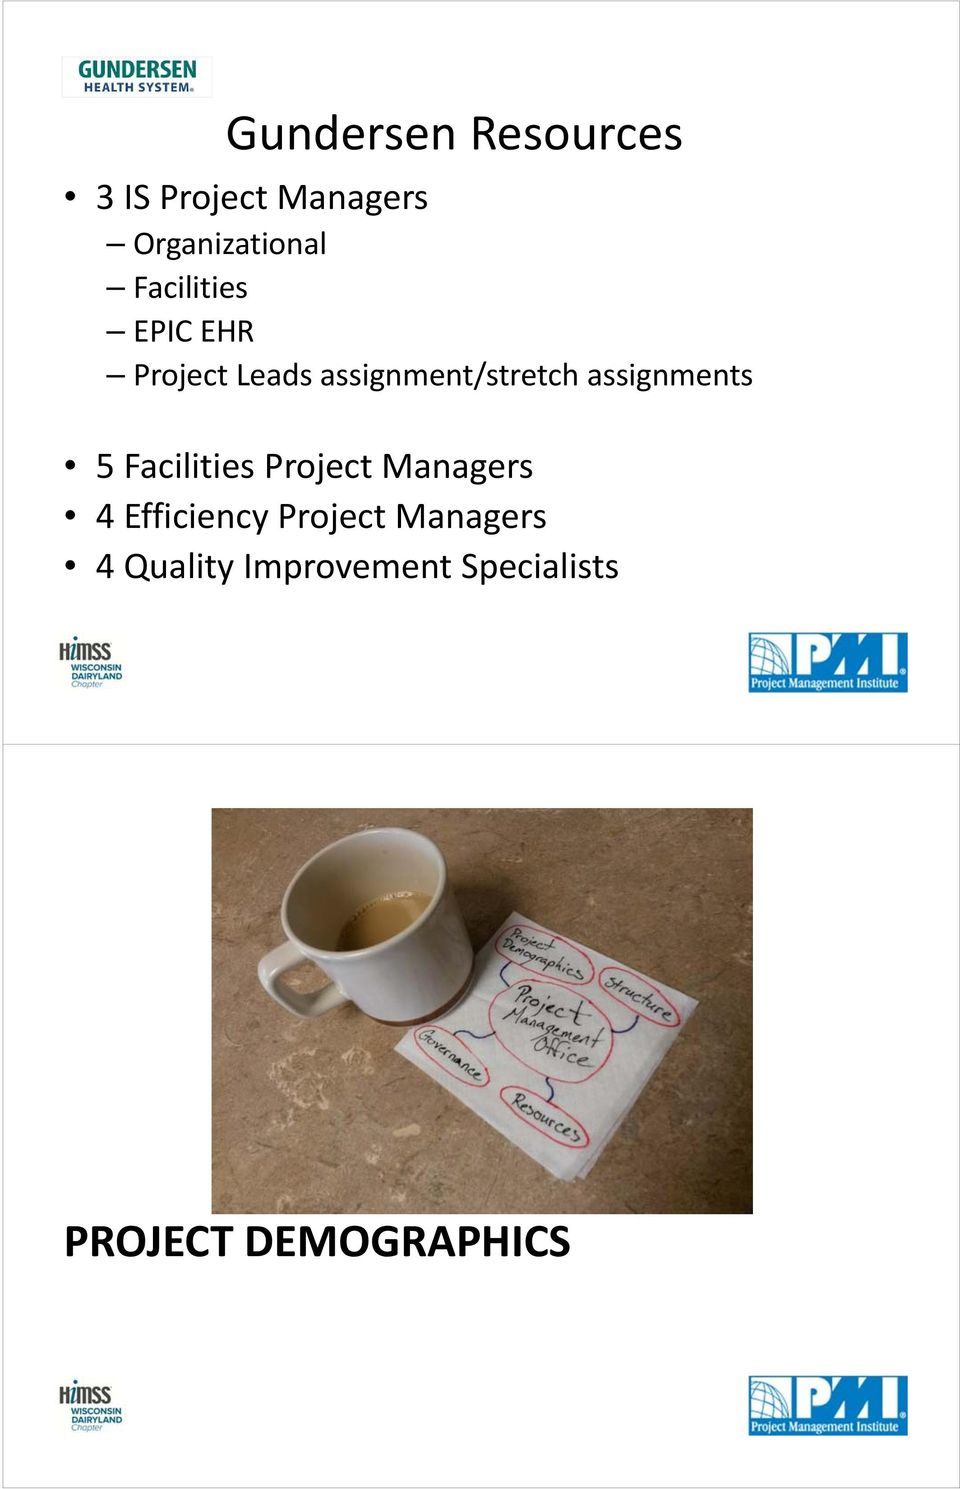 assignments 5 Facilities Project Managers 4 Efficiency